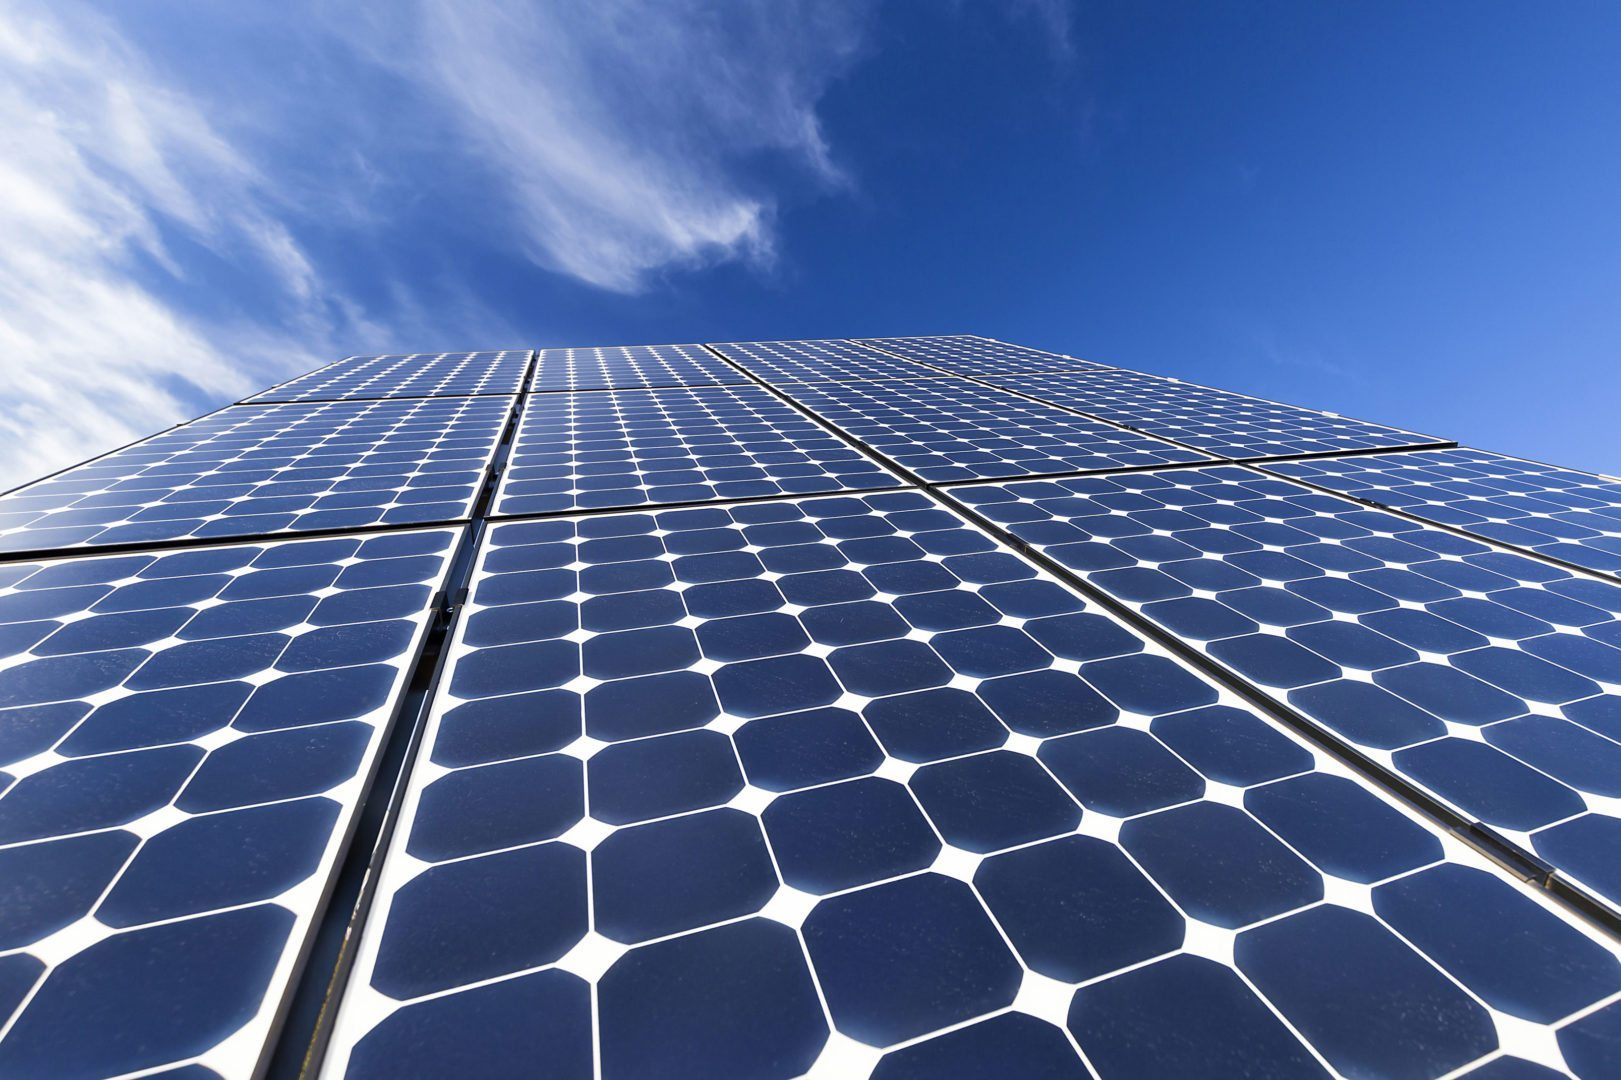 Innovative ways to store and utilize solar energy emerge, different challenges will be overcome